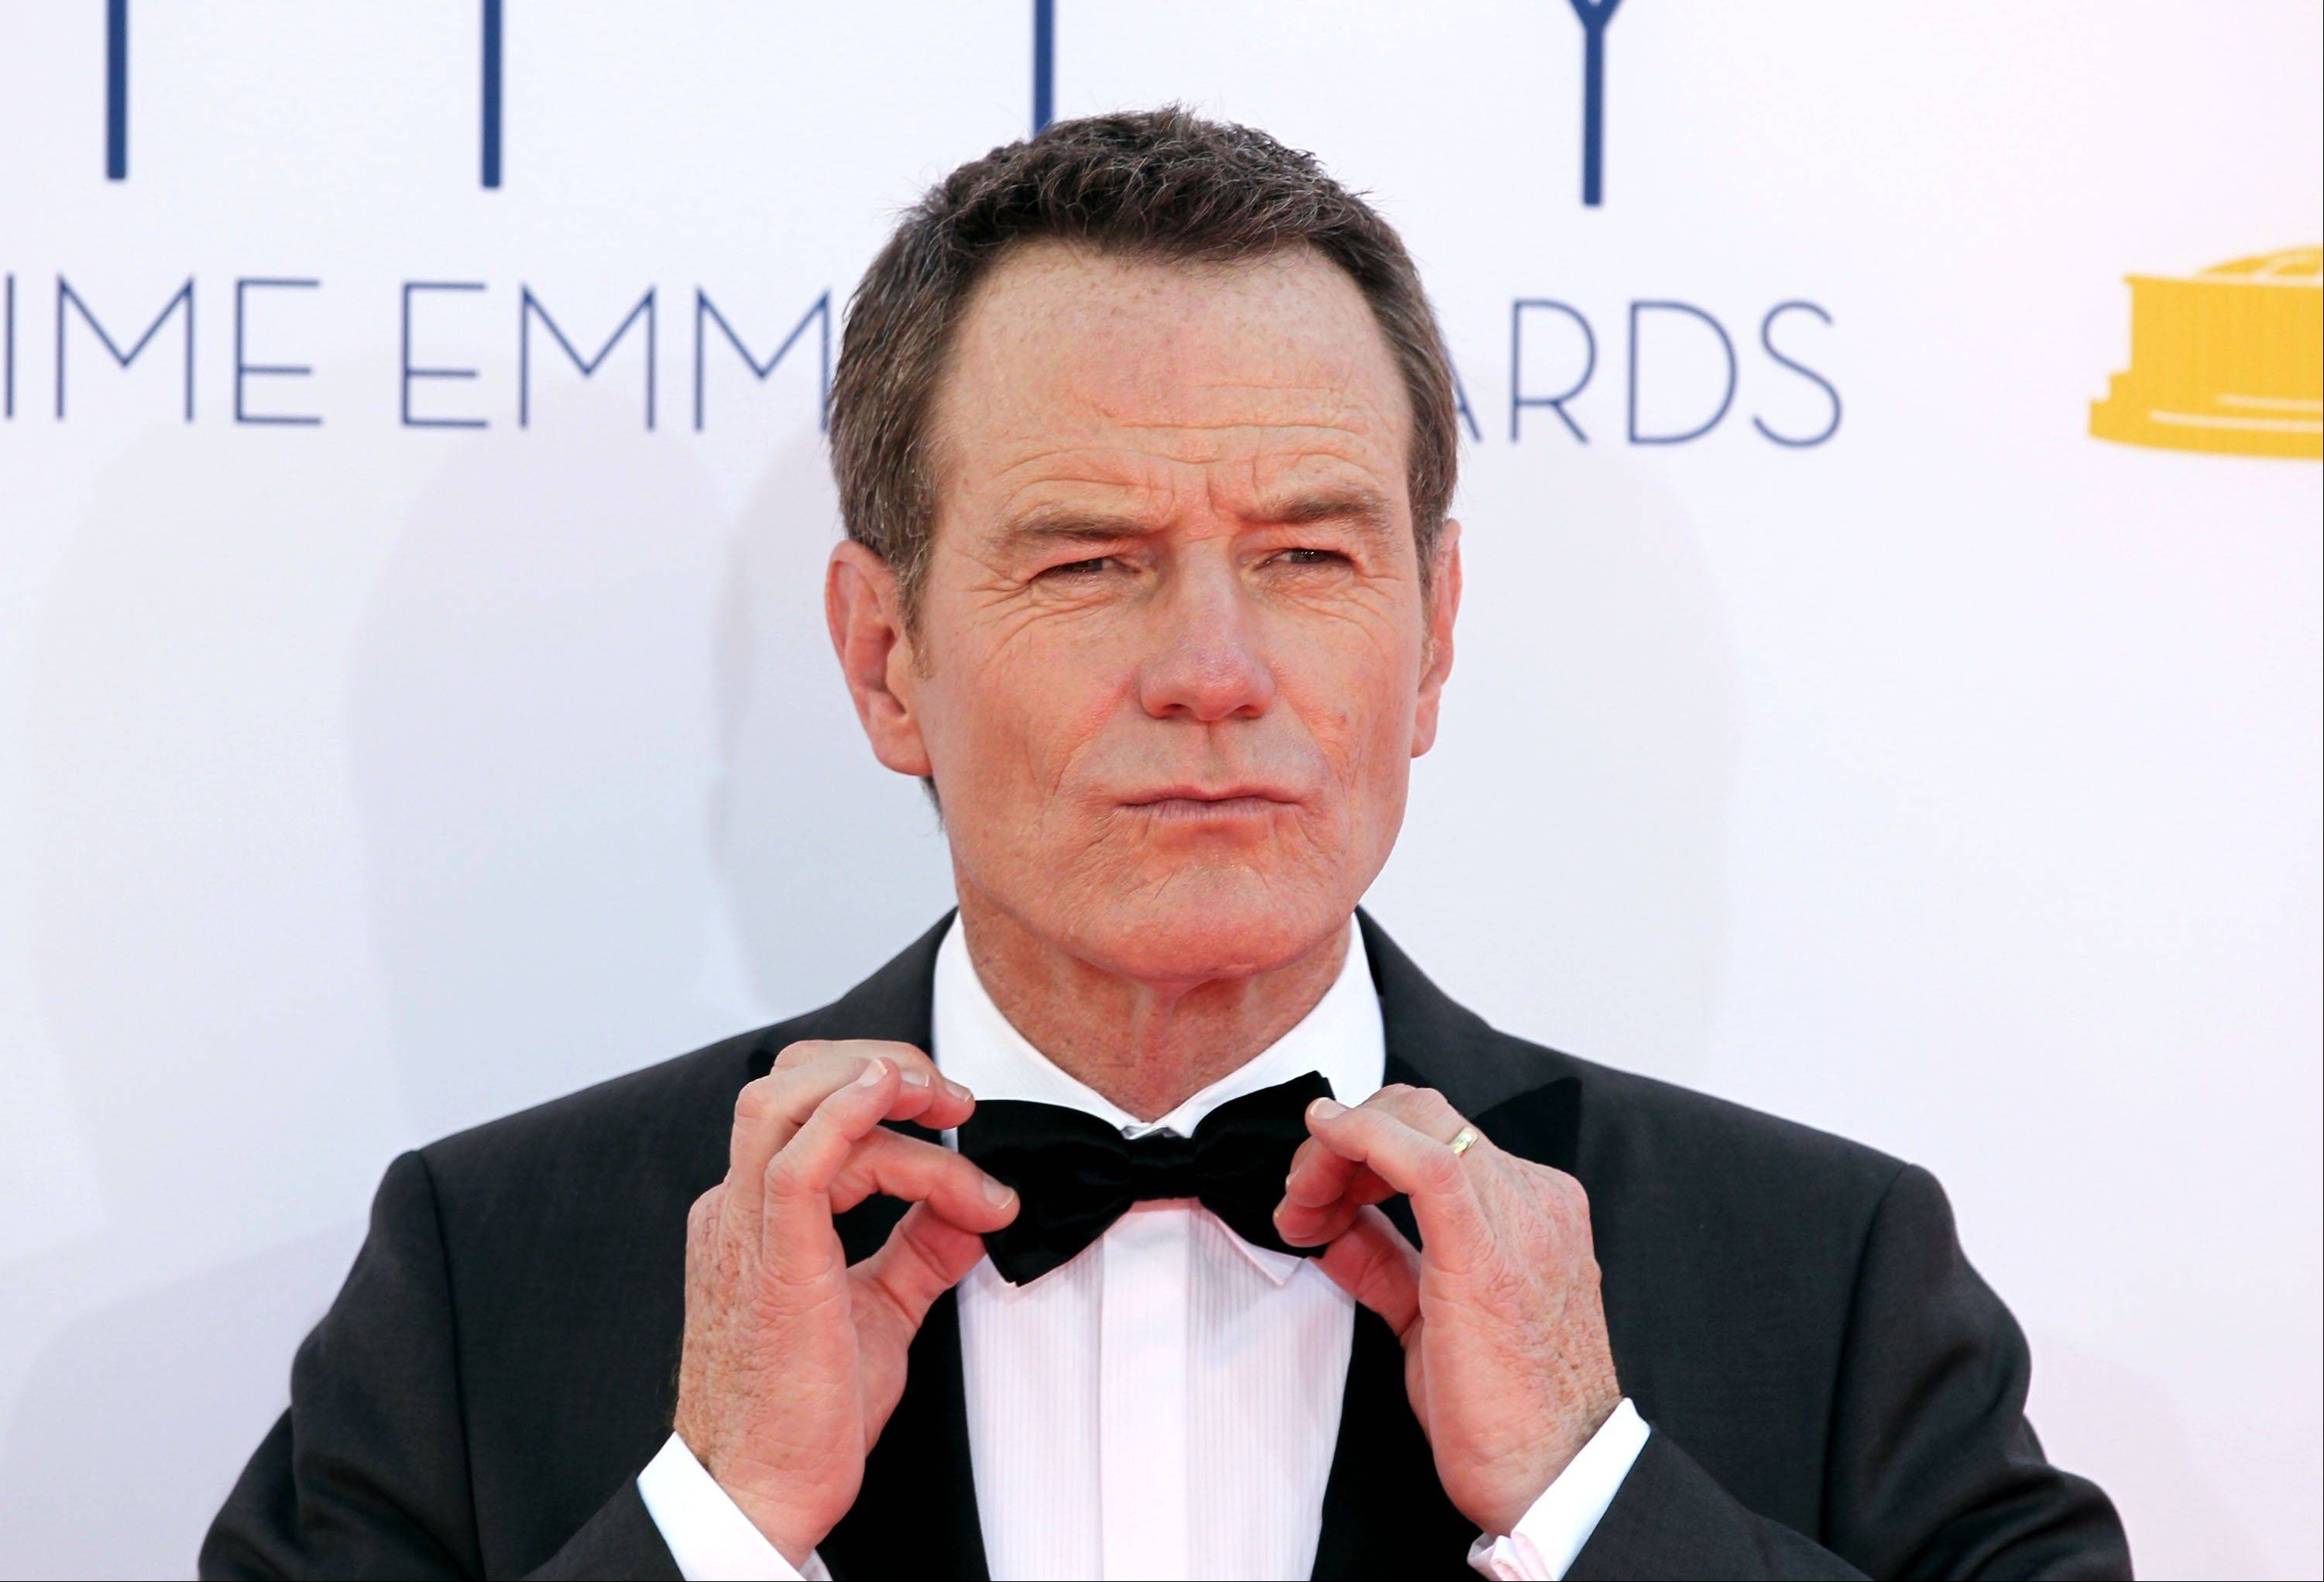 """Breaking Bad"" star Bryan Cranston isn't taking Emmy night too seriously. His show could have an impressive Emmy haul."